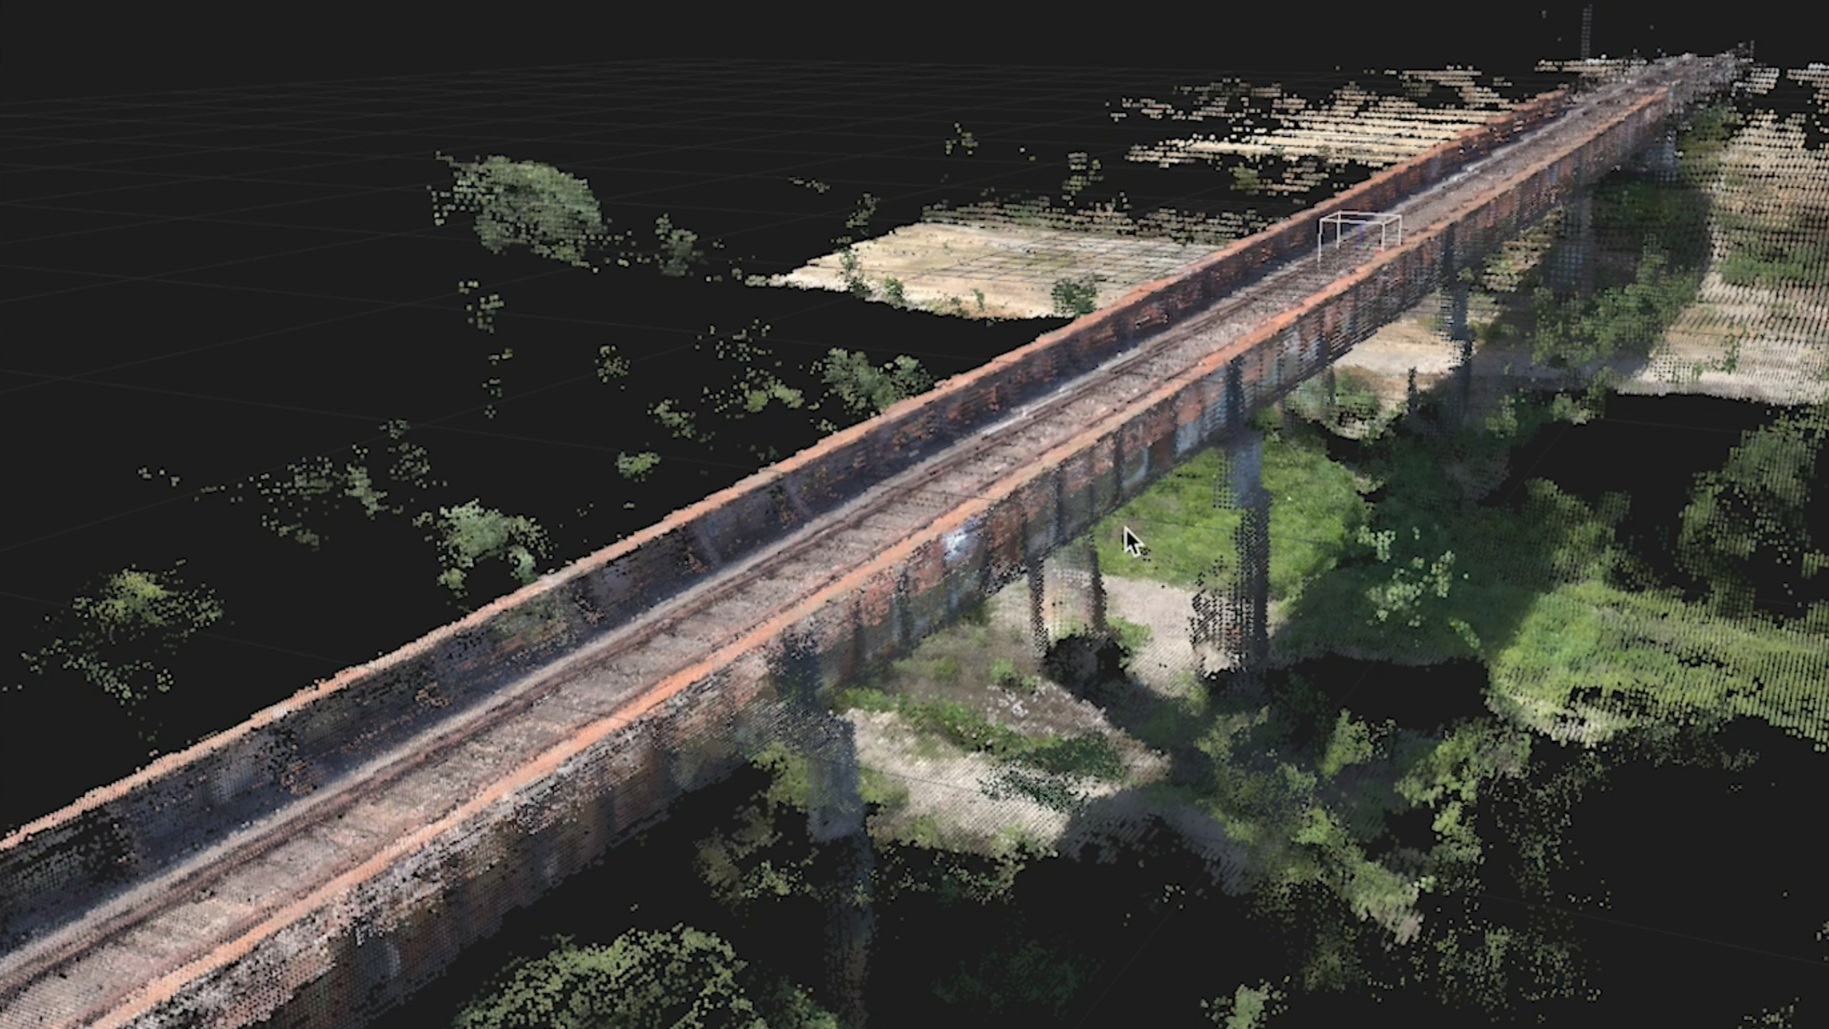 PROCESS - Hundreds of photos are then stitched together into a high resolution 3D point cloud.